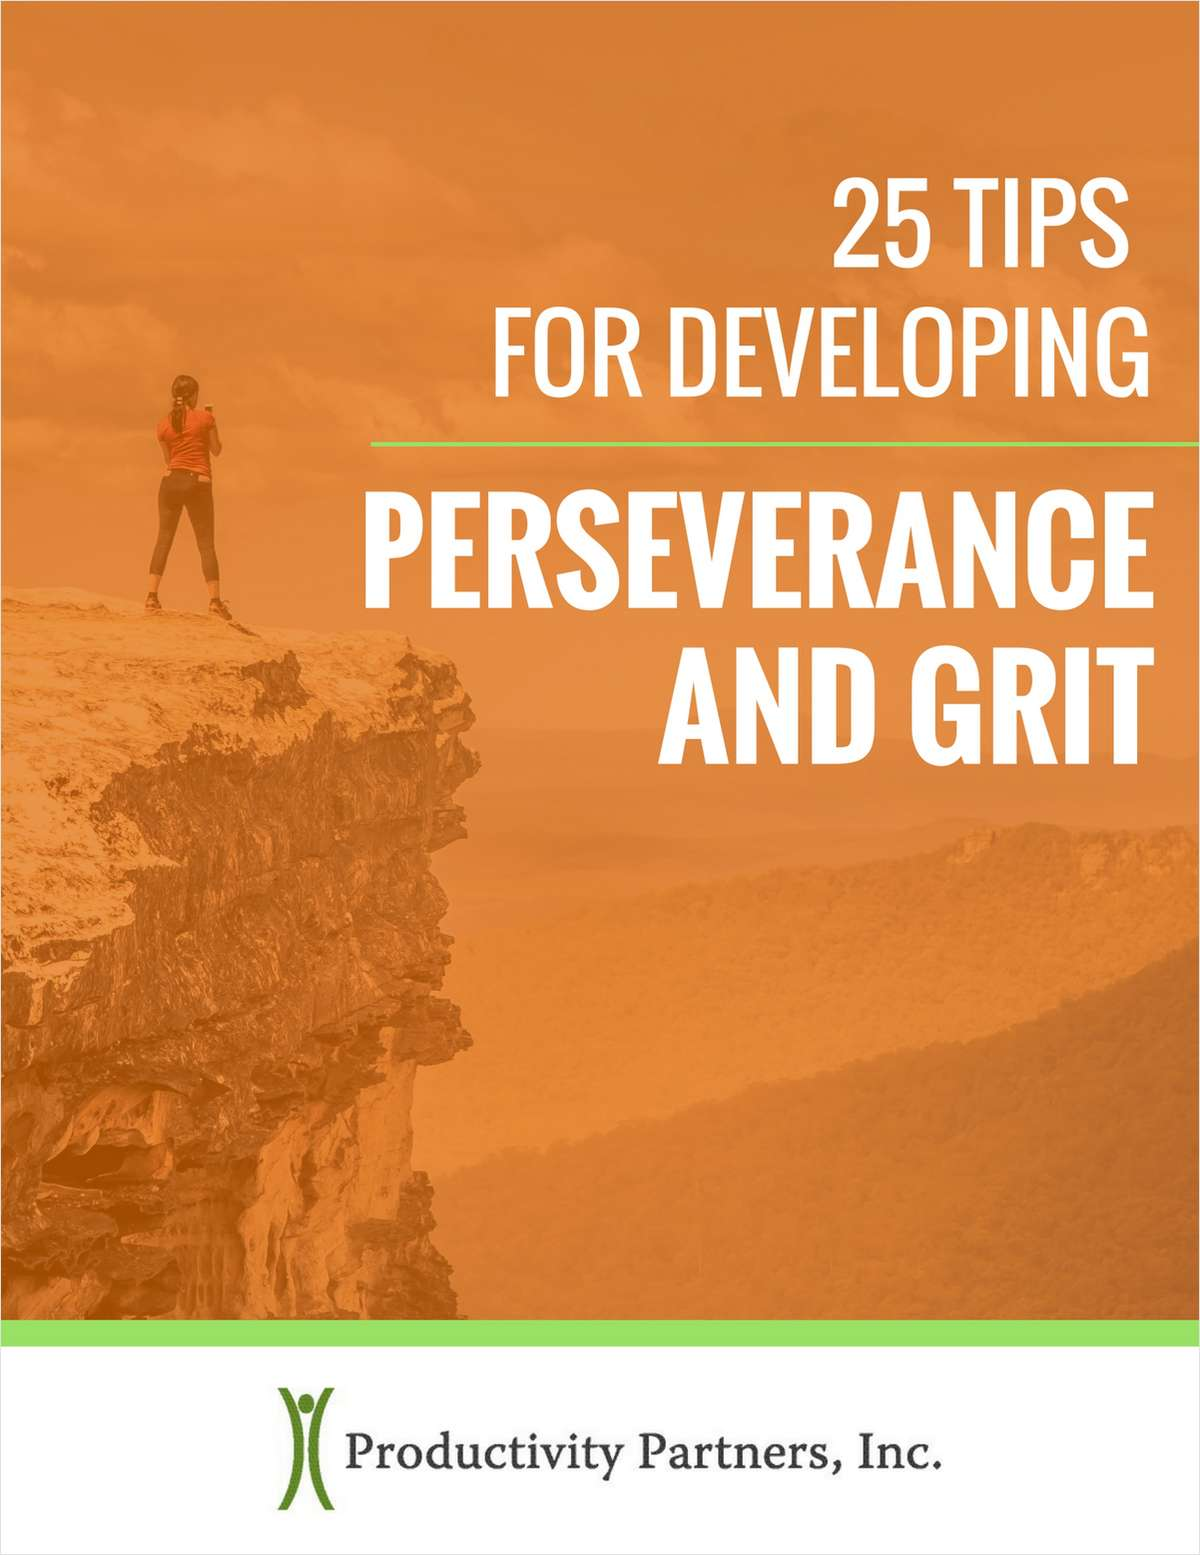 Step 1: Make sure your goals are worthy of your perseverance.